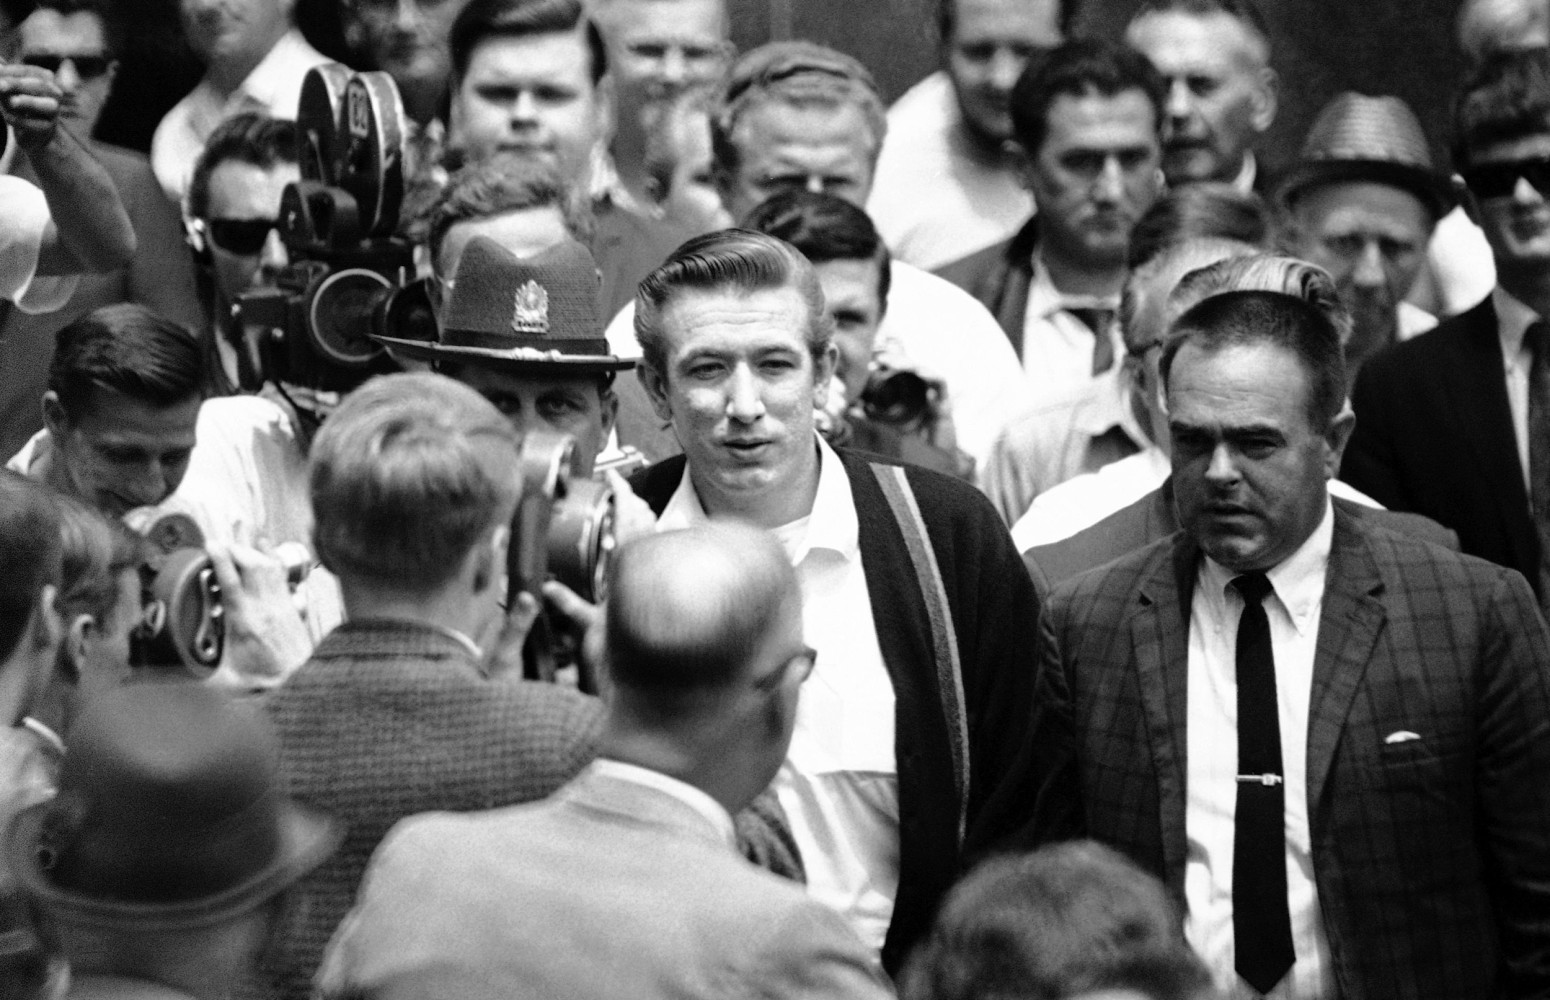 How richard speck 39 s rampage 50 years ago changed a nation for Richard speck tattoo